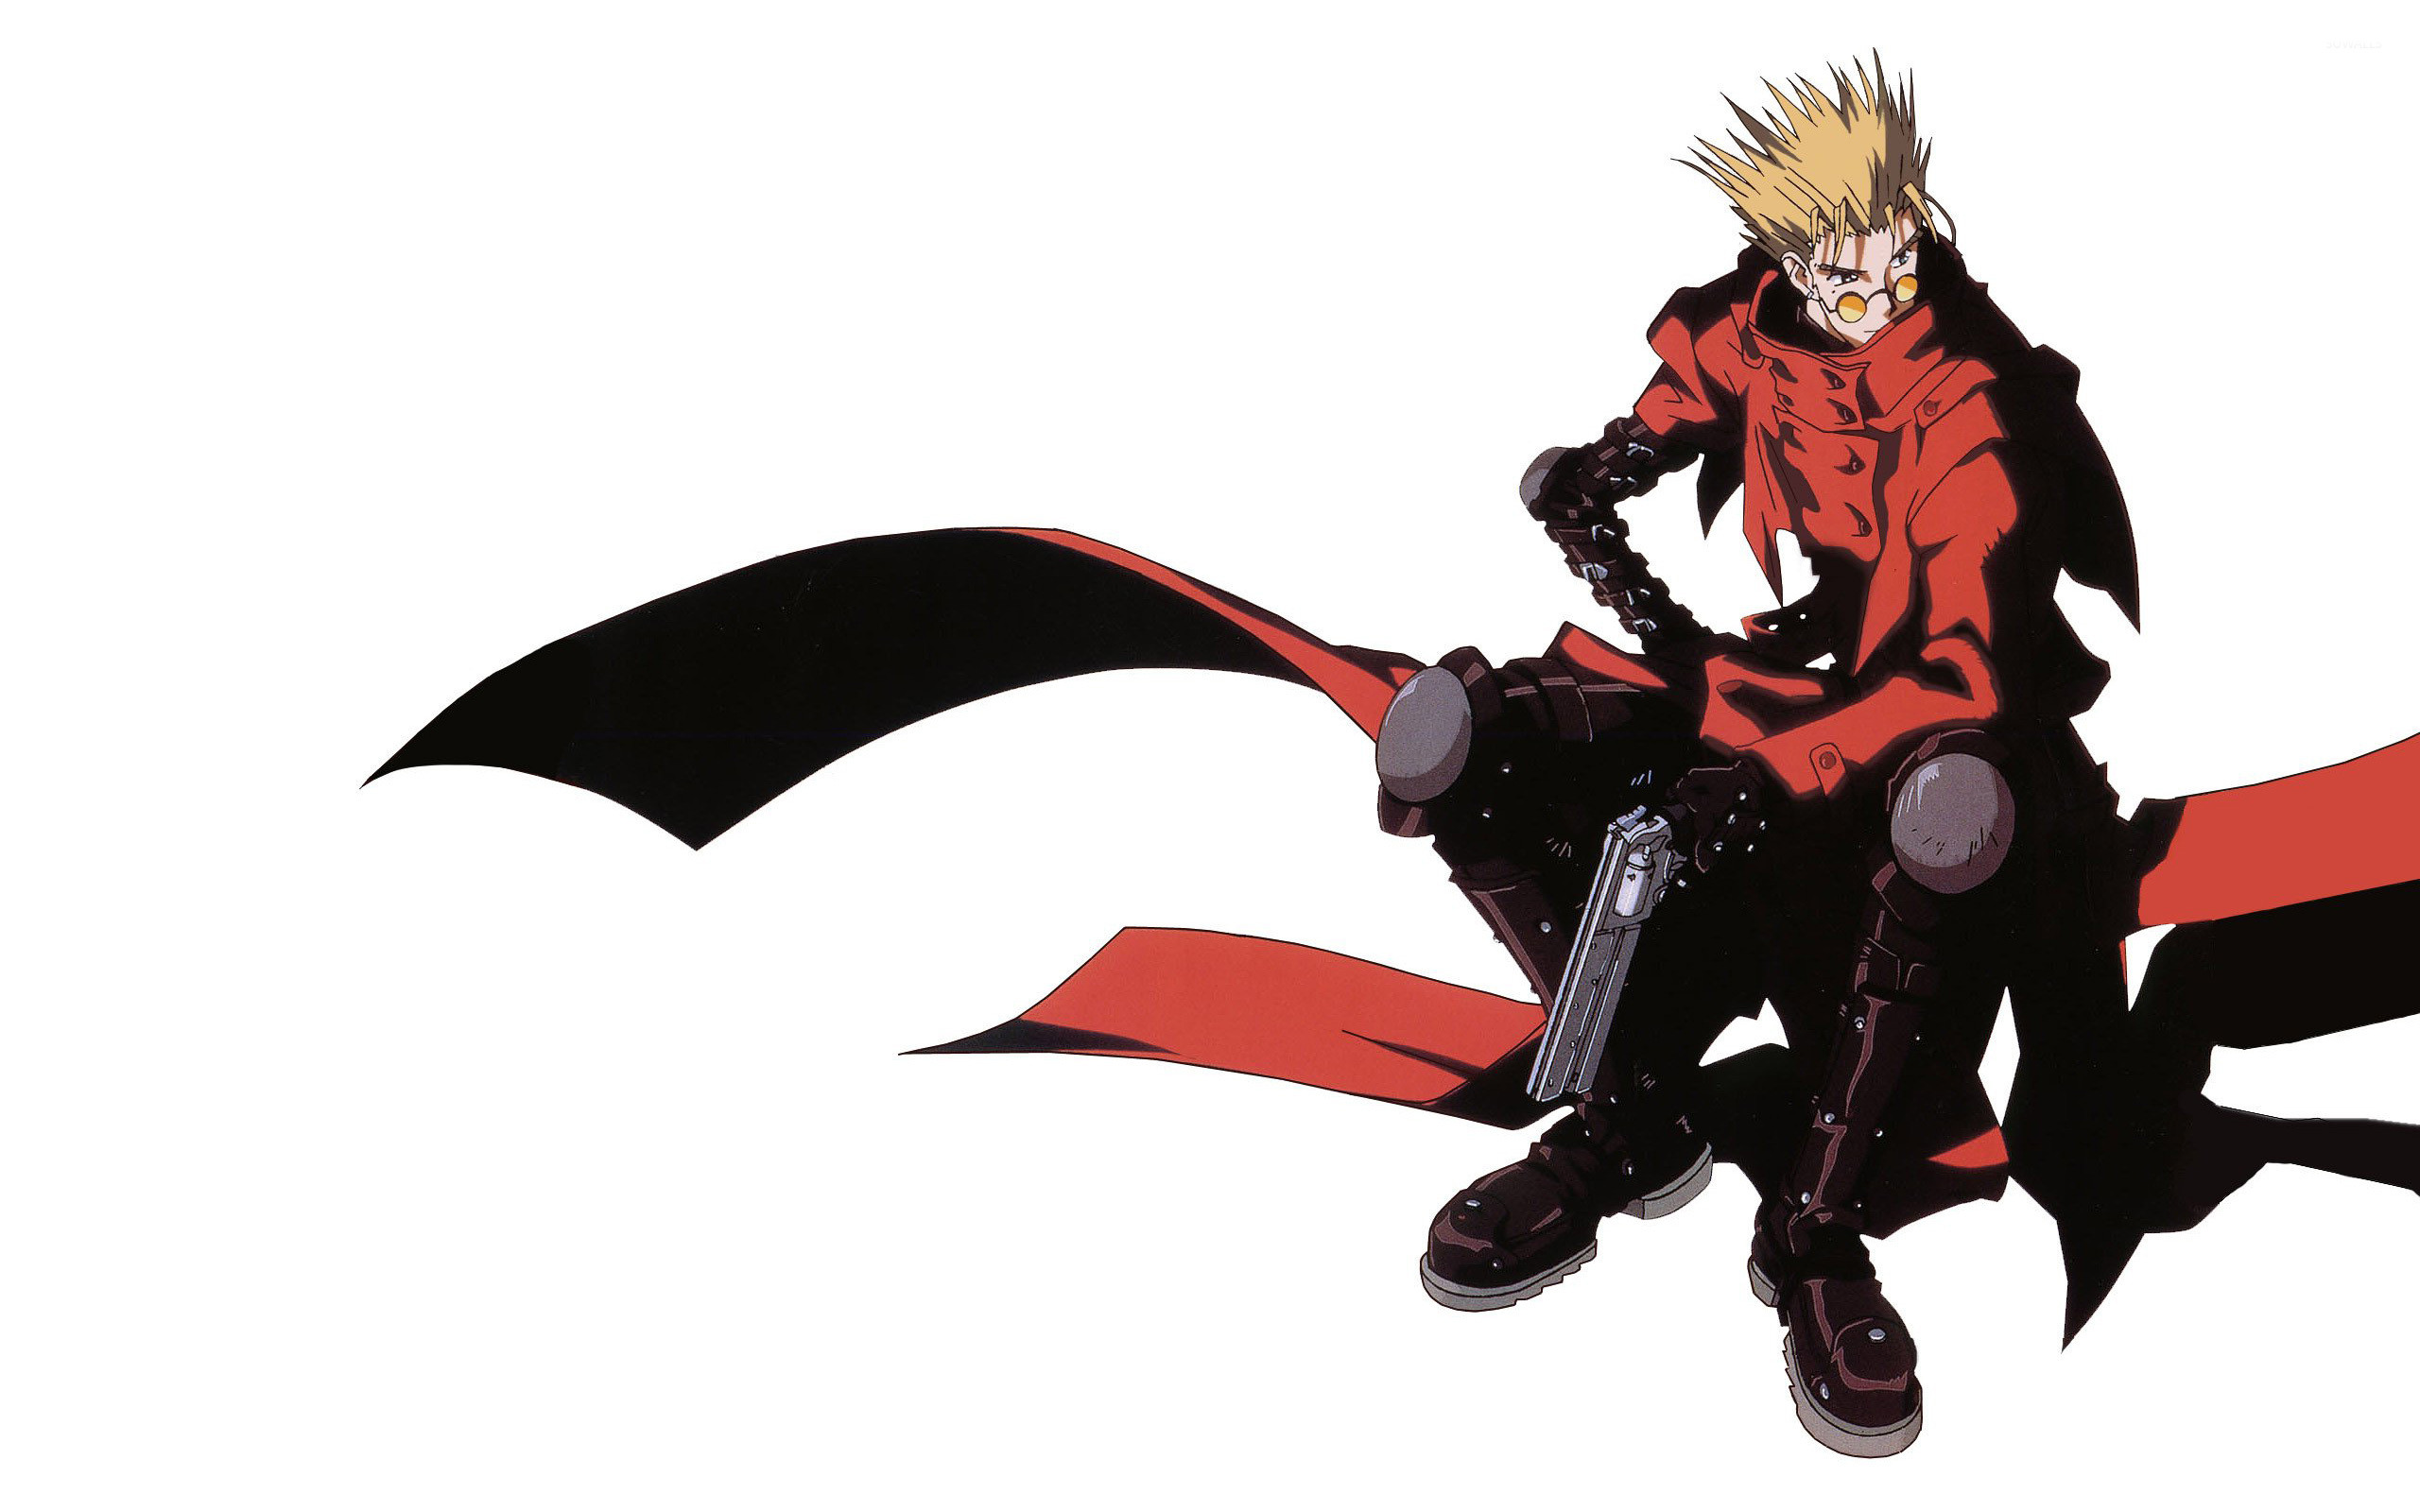 Res: 2560x1600, Vash the Stampede wallpaper